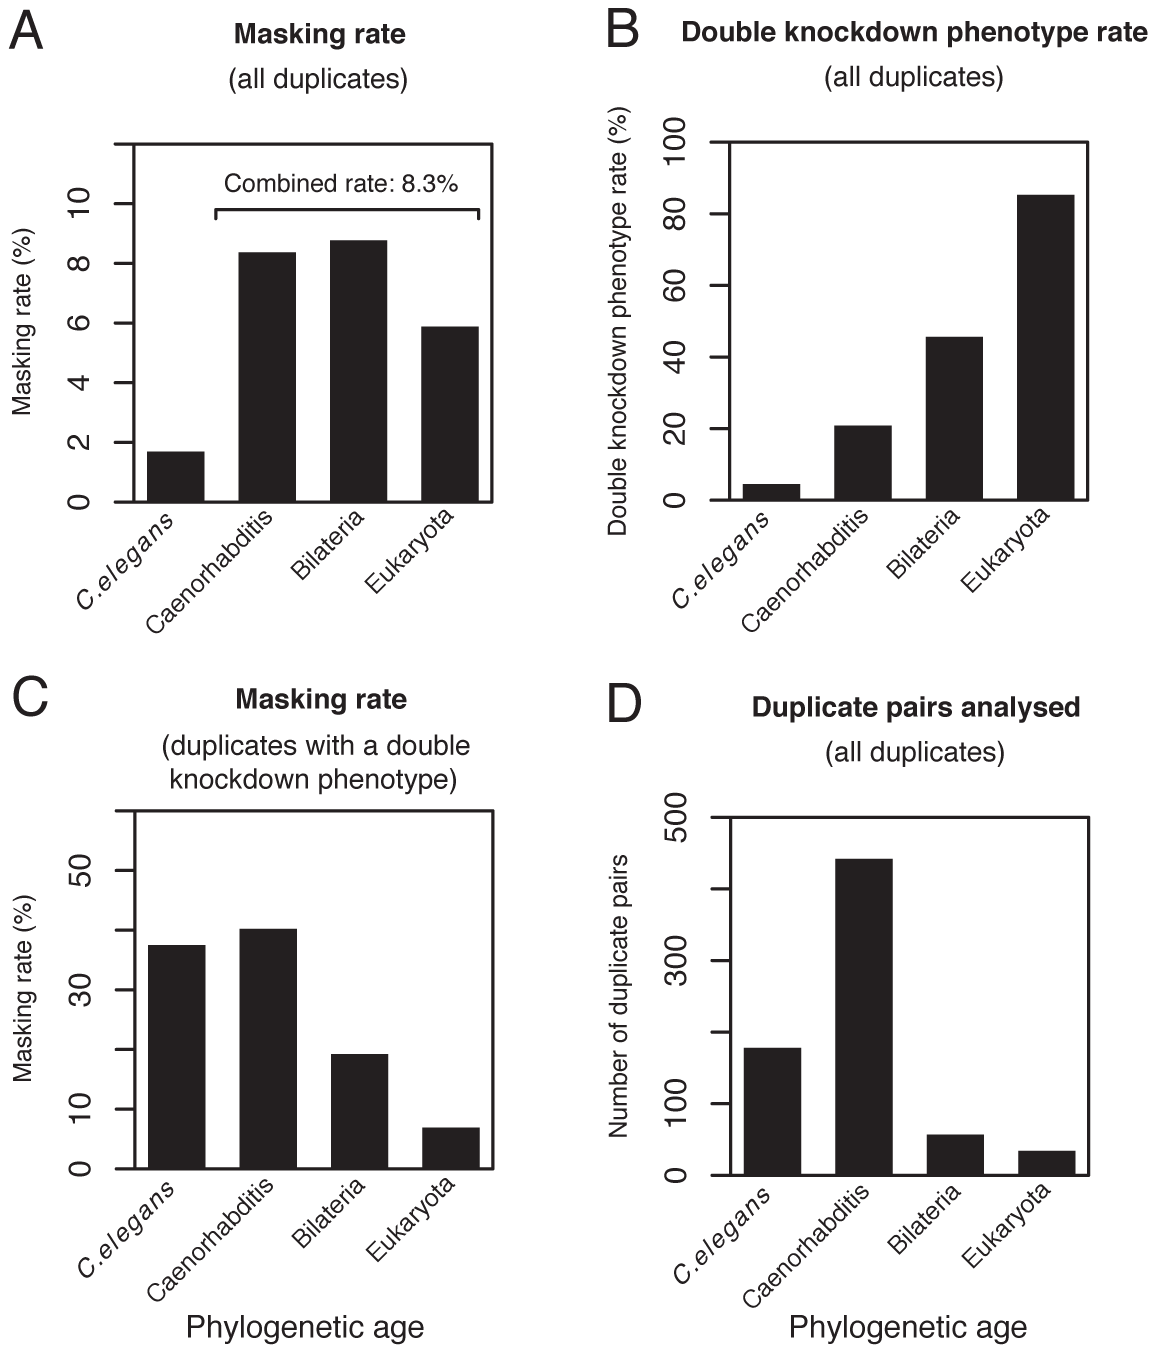 Phenotype masking and double knockdown phenotype rates grouped by phylogenetic age.